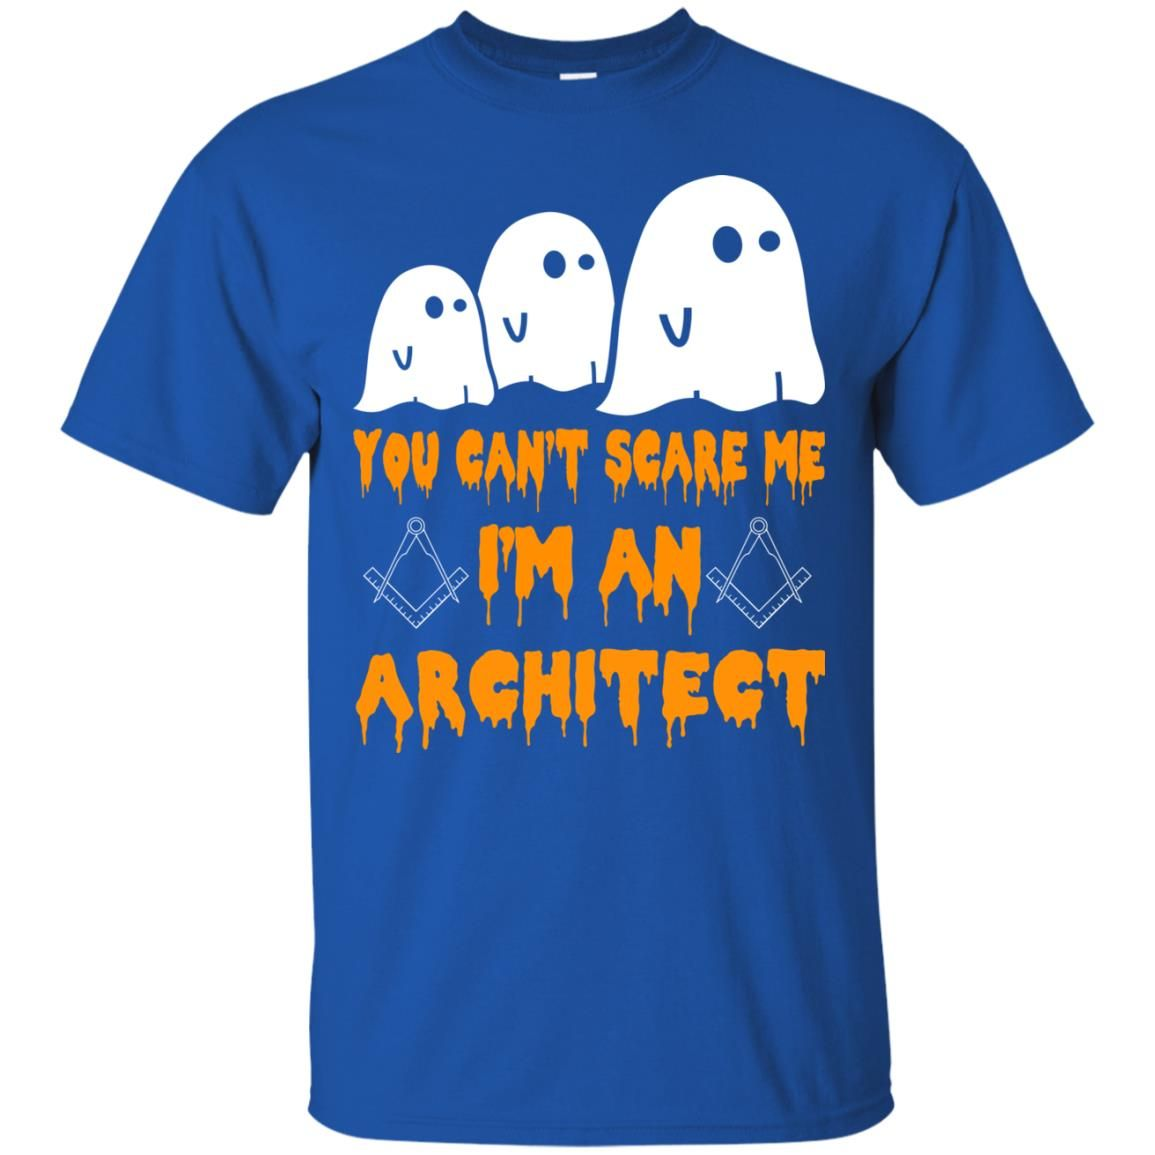 image 515 - You can't scare me I'm an Architect shirt, hoodie, tank